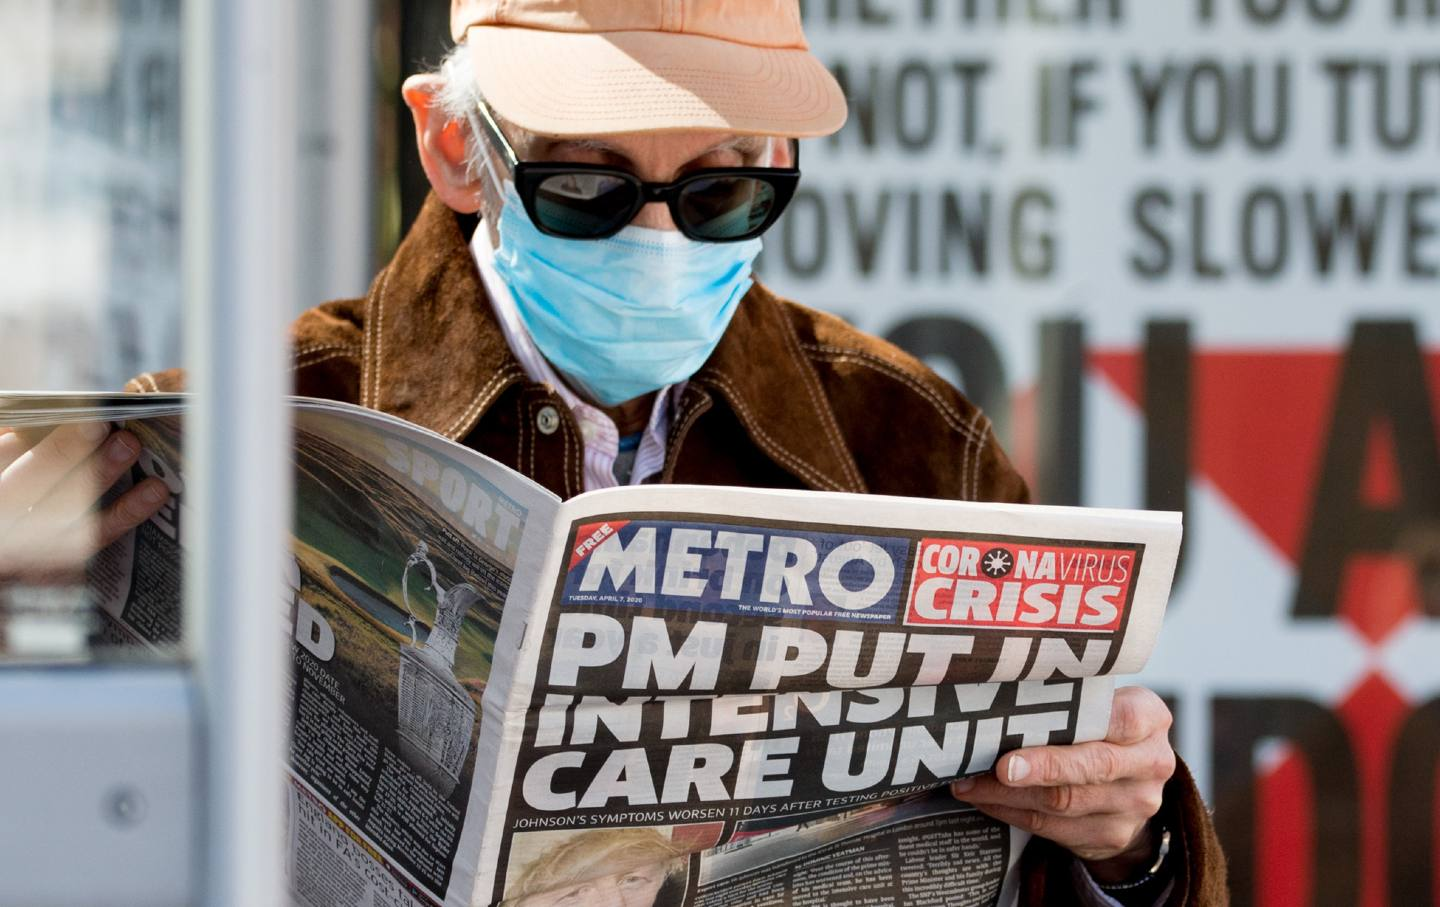 A man wearing a surgical mask reads the Metro newspaper